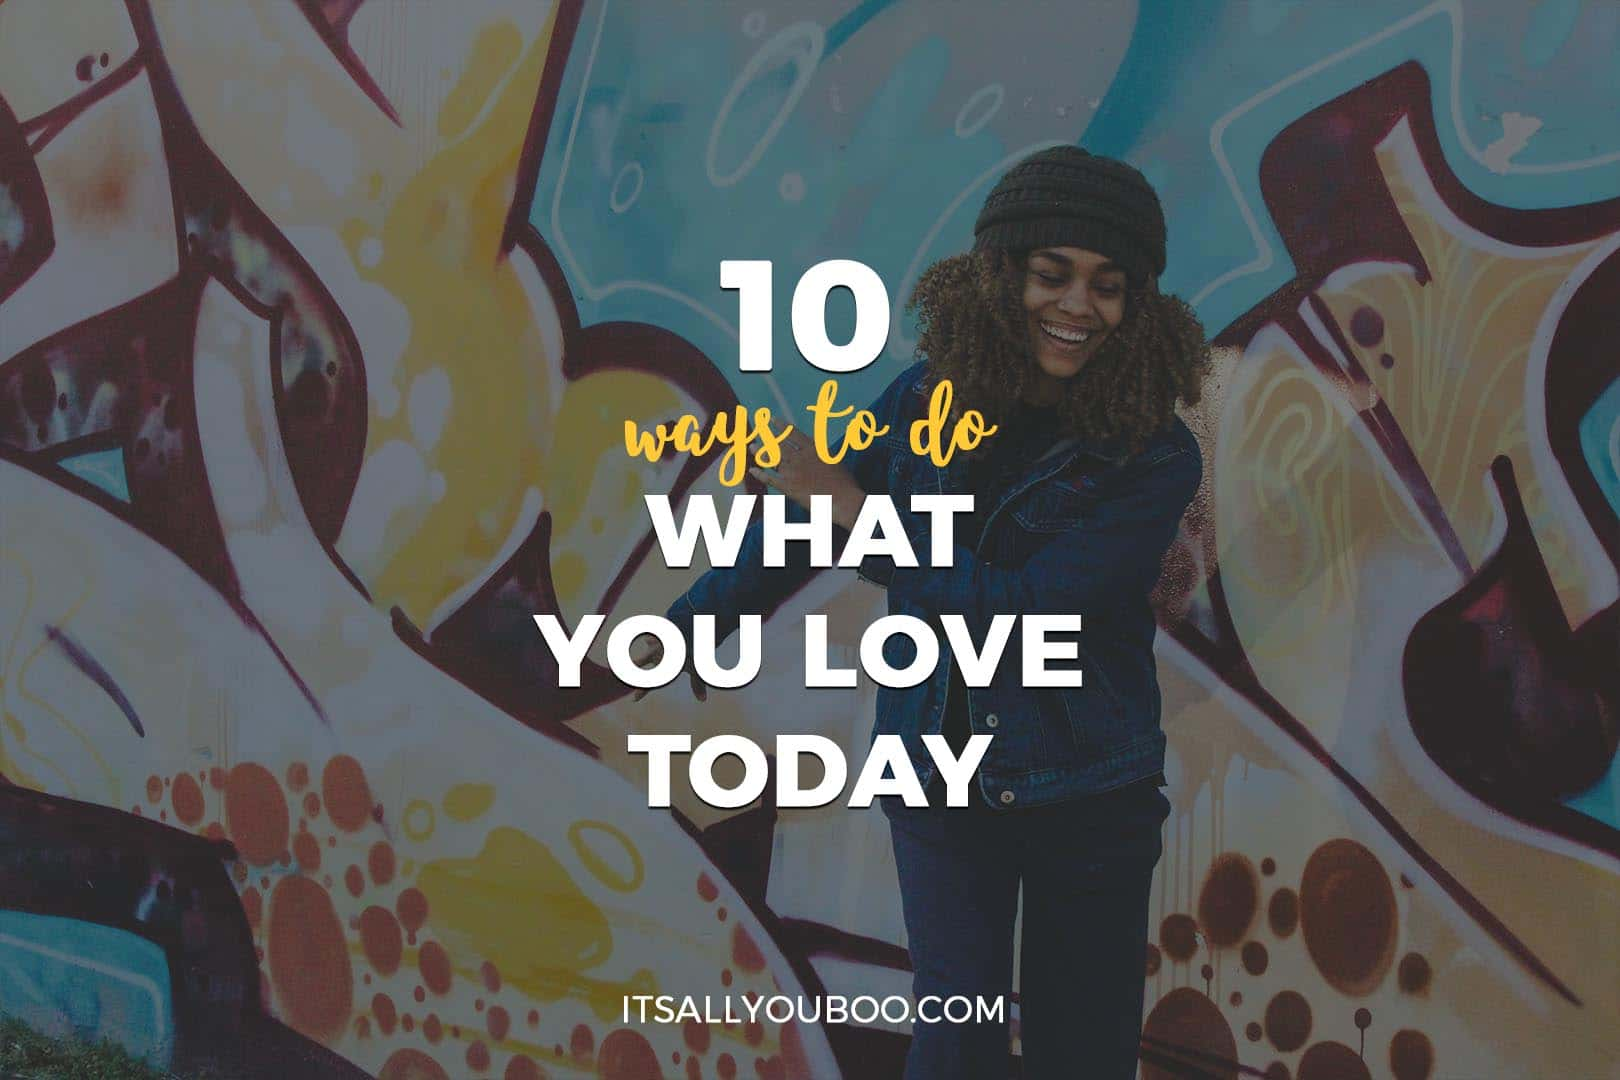 How to Do What You Love Today